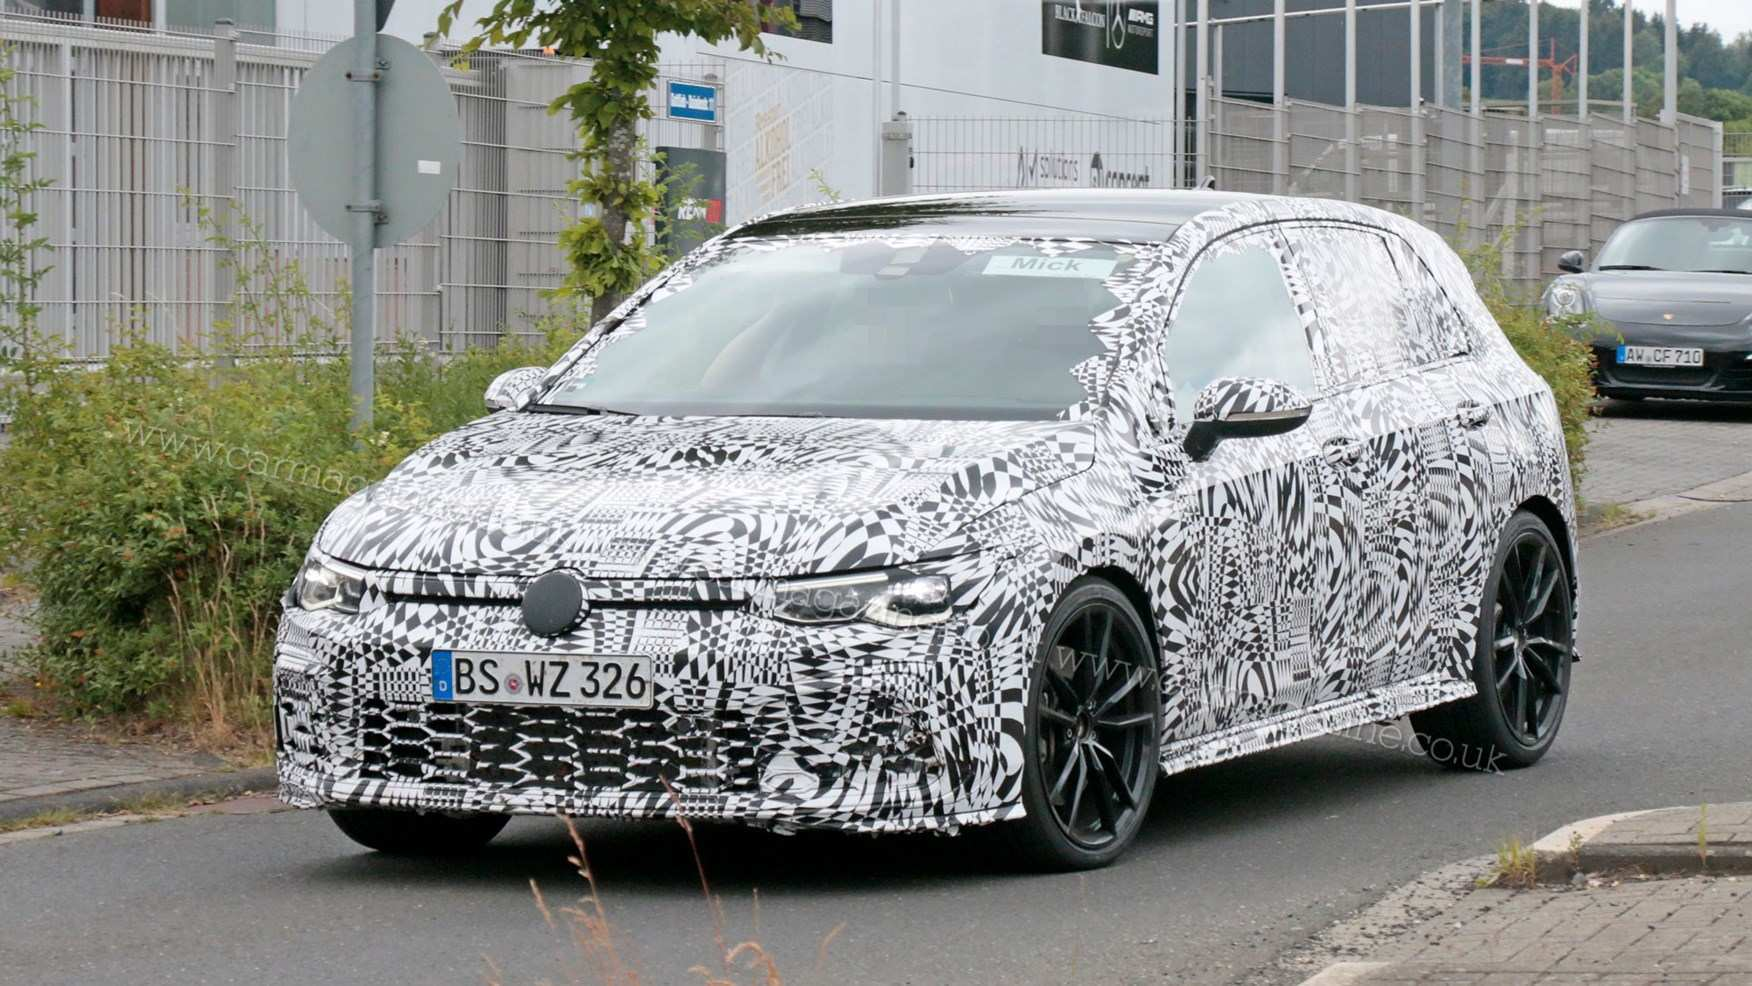 72 New 2020 Volkswagen Golf Mk8 New Concept